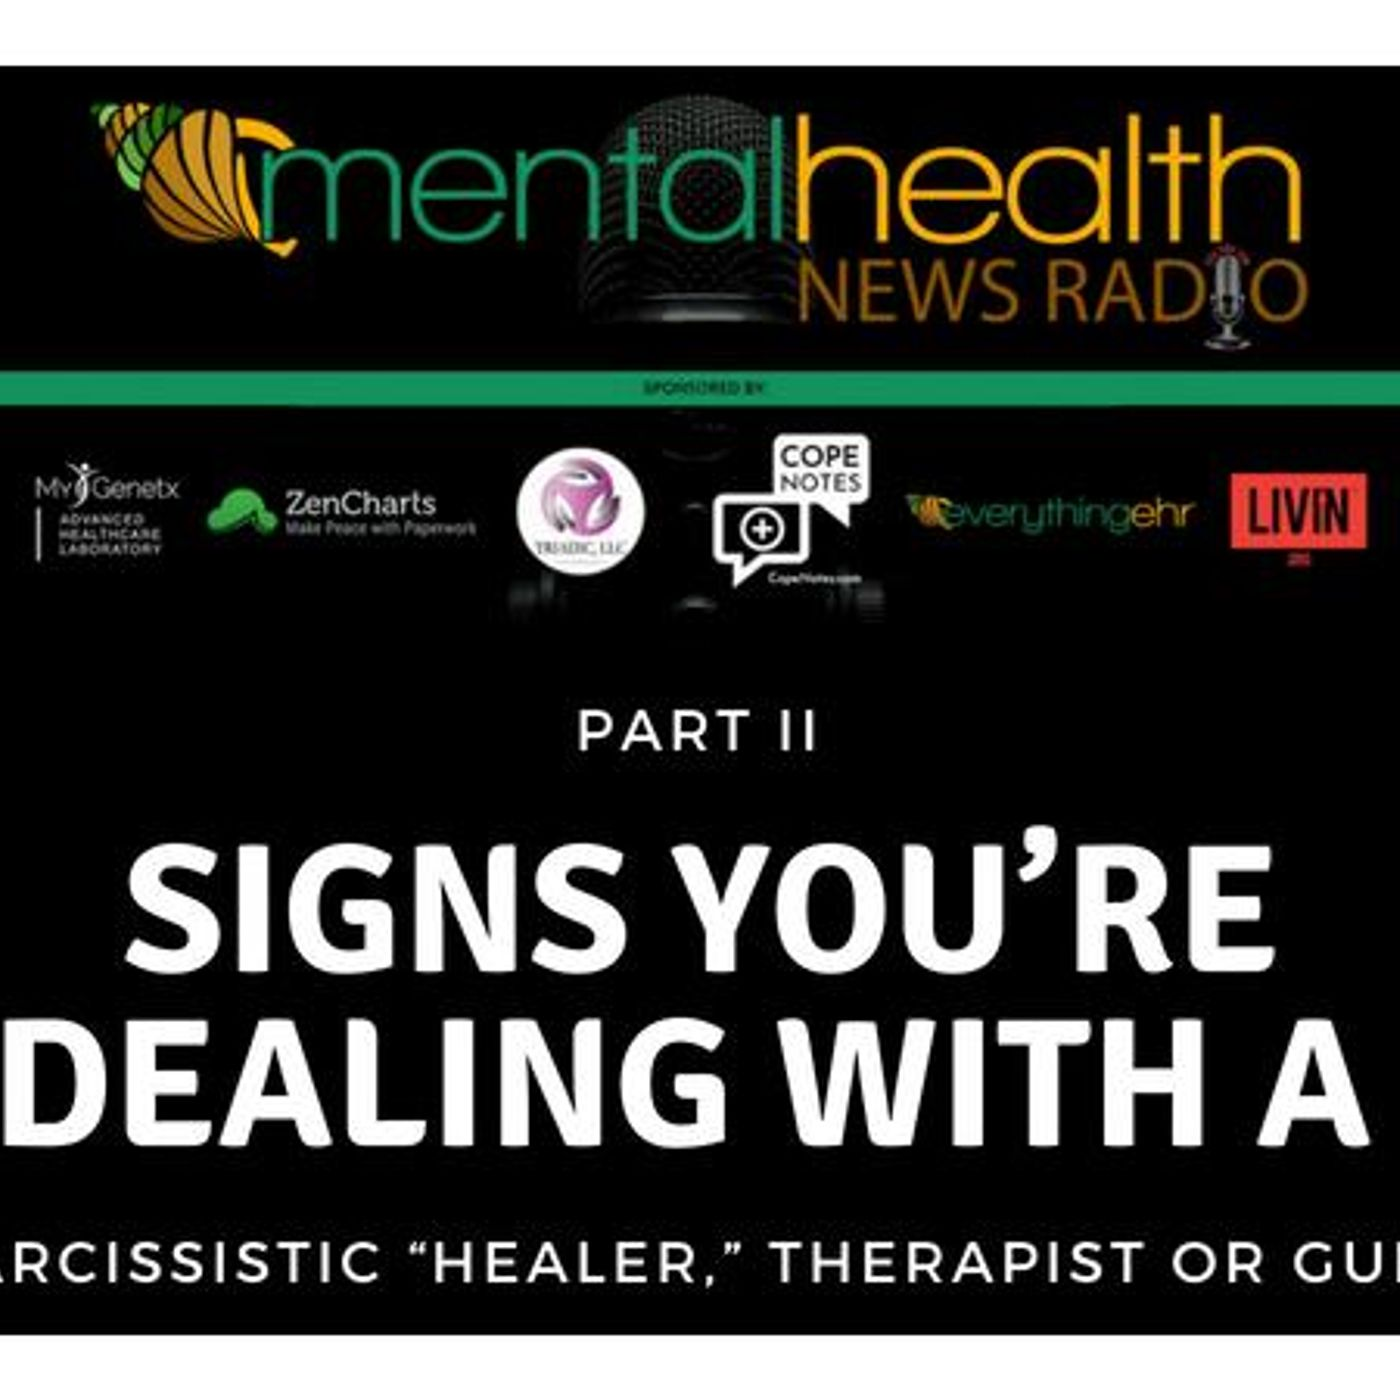 """Mental Health News Radio - SIGNS YOU'RE DEALING WITH A NARCISSISTIC """"HEALER,"""" THERAPIST OR GURU PART II"""